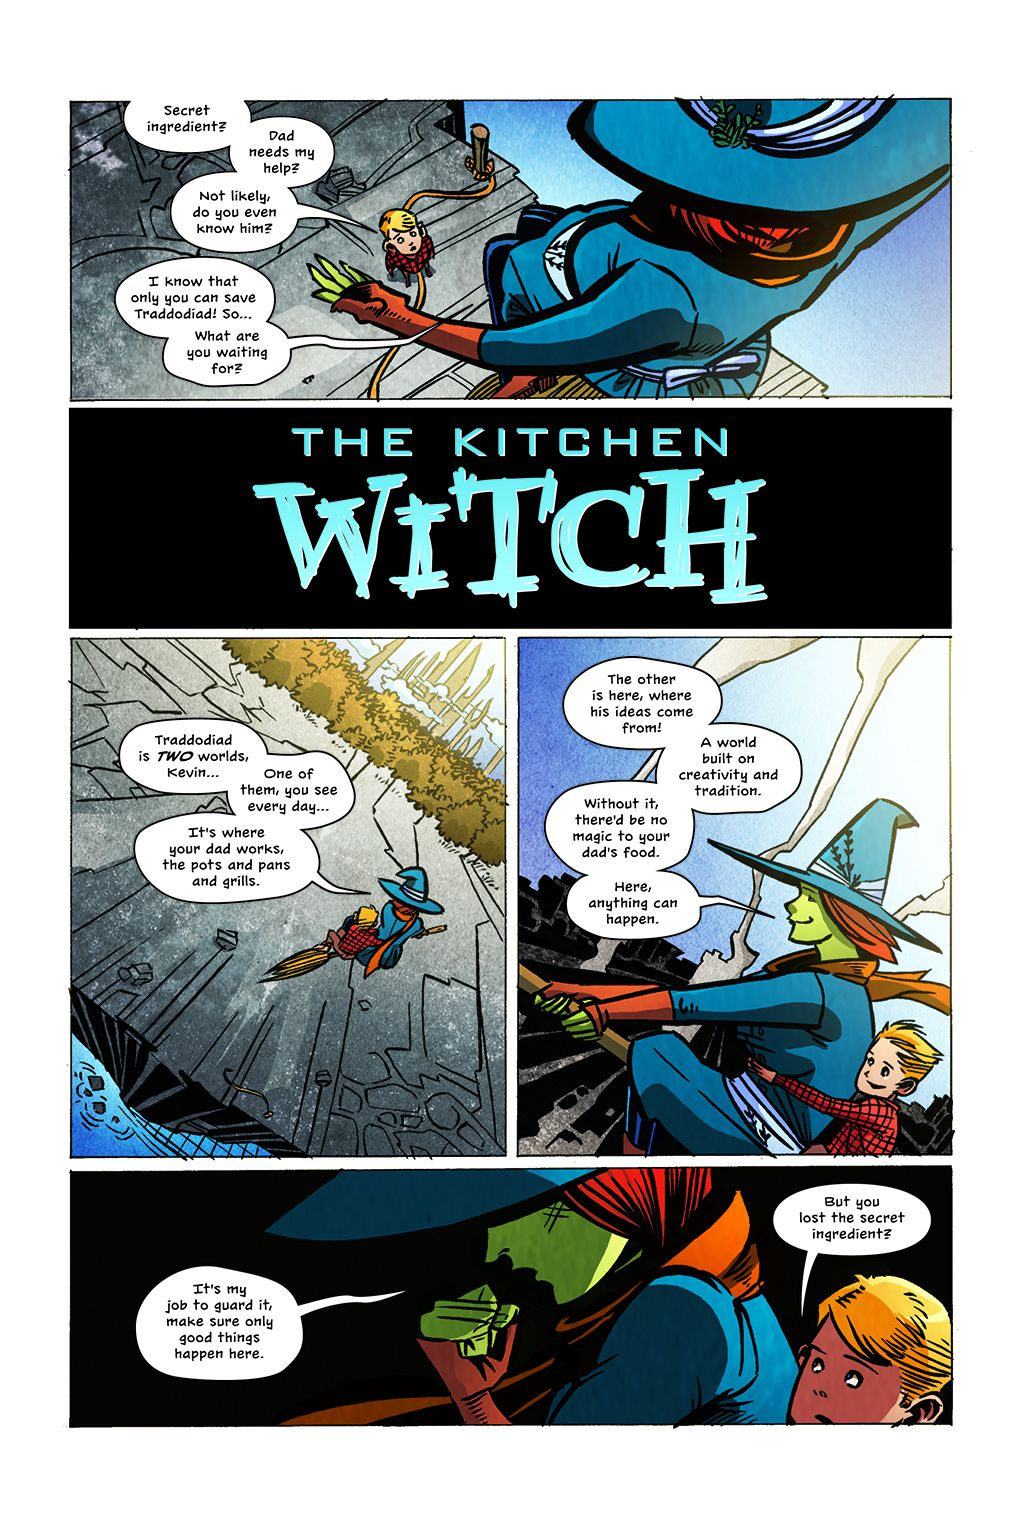 A page from The Kitchen Witch, 215 Ink (2021).